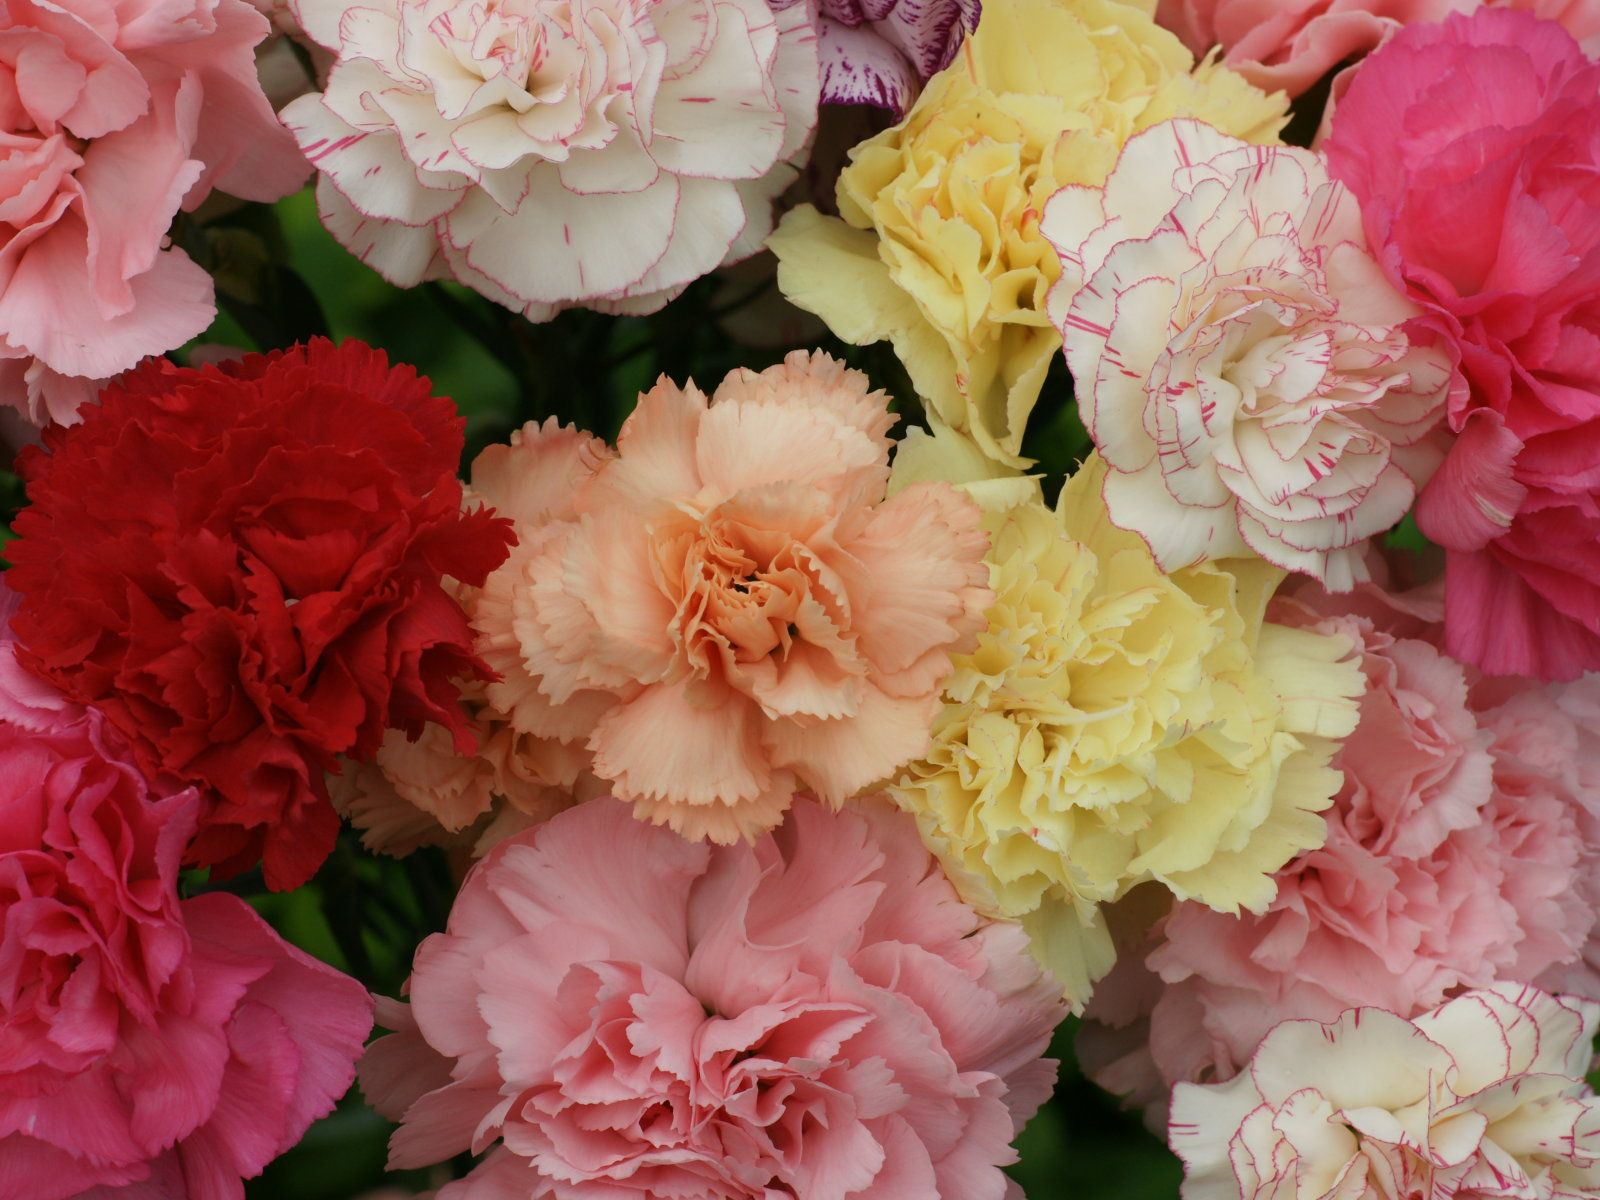 carnations - Google Search This shows a variety of Carnations and ...